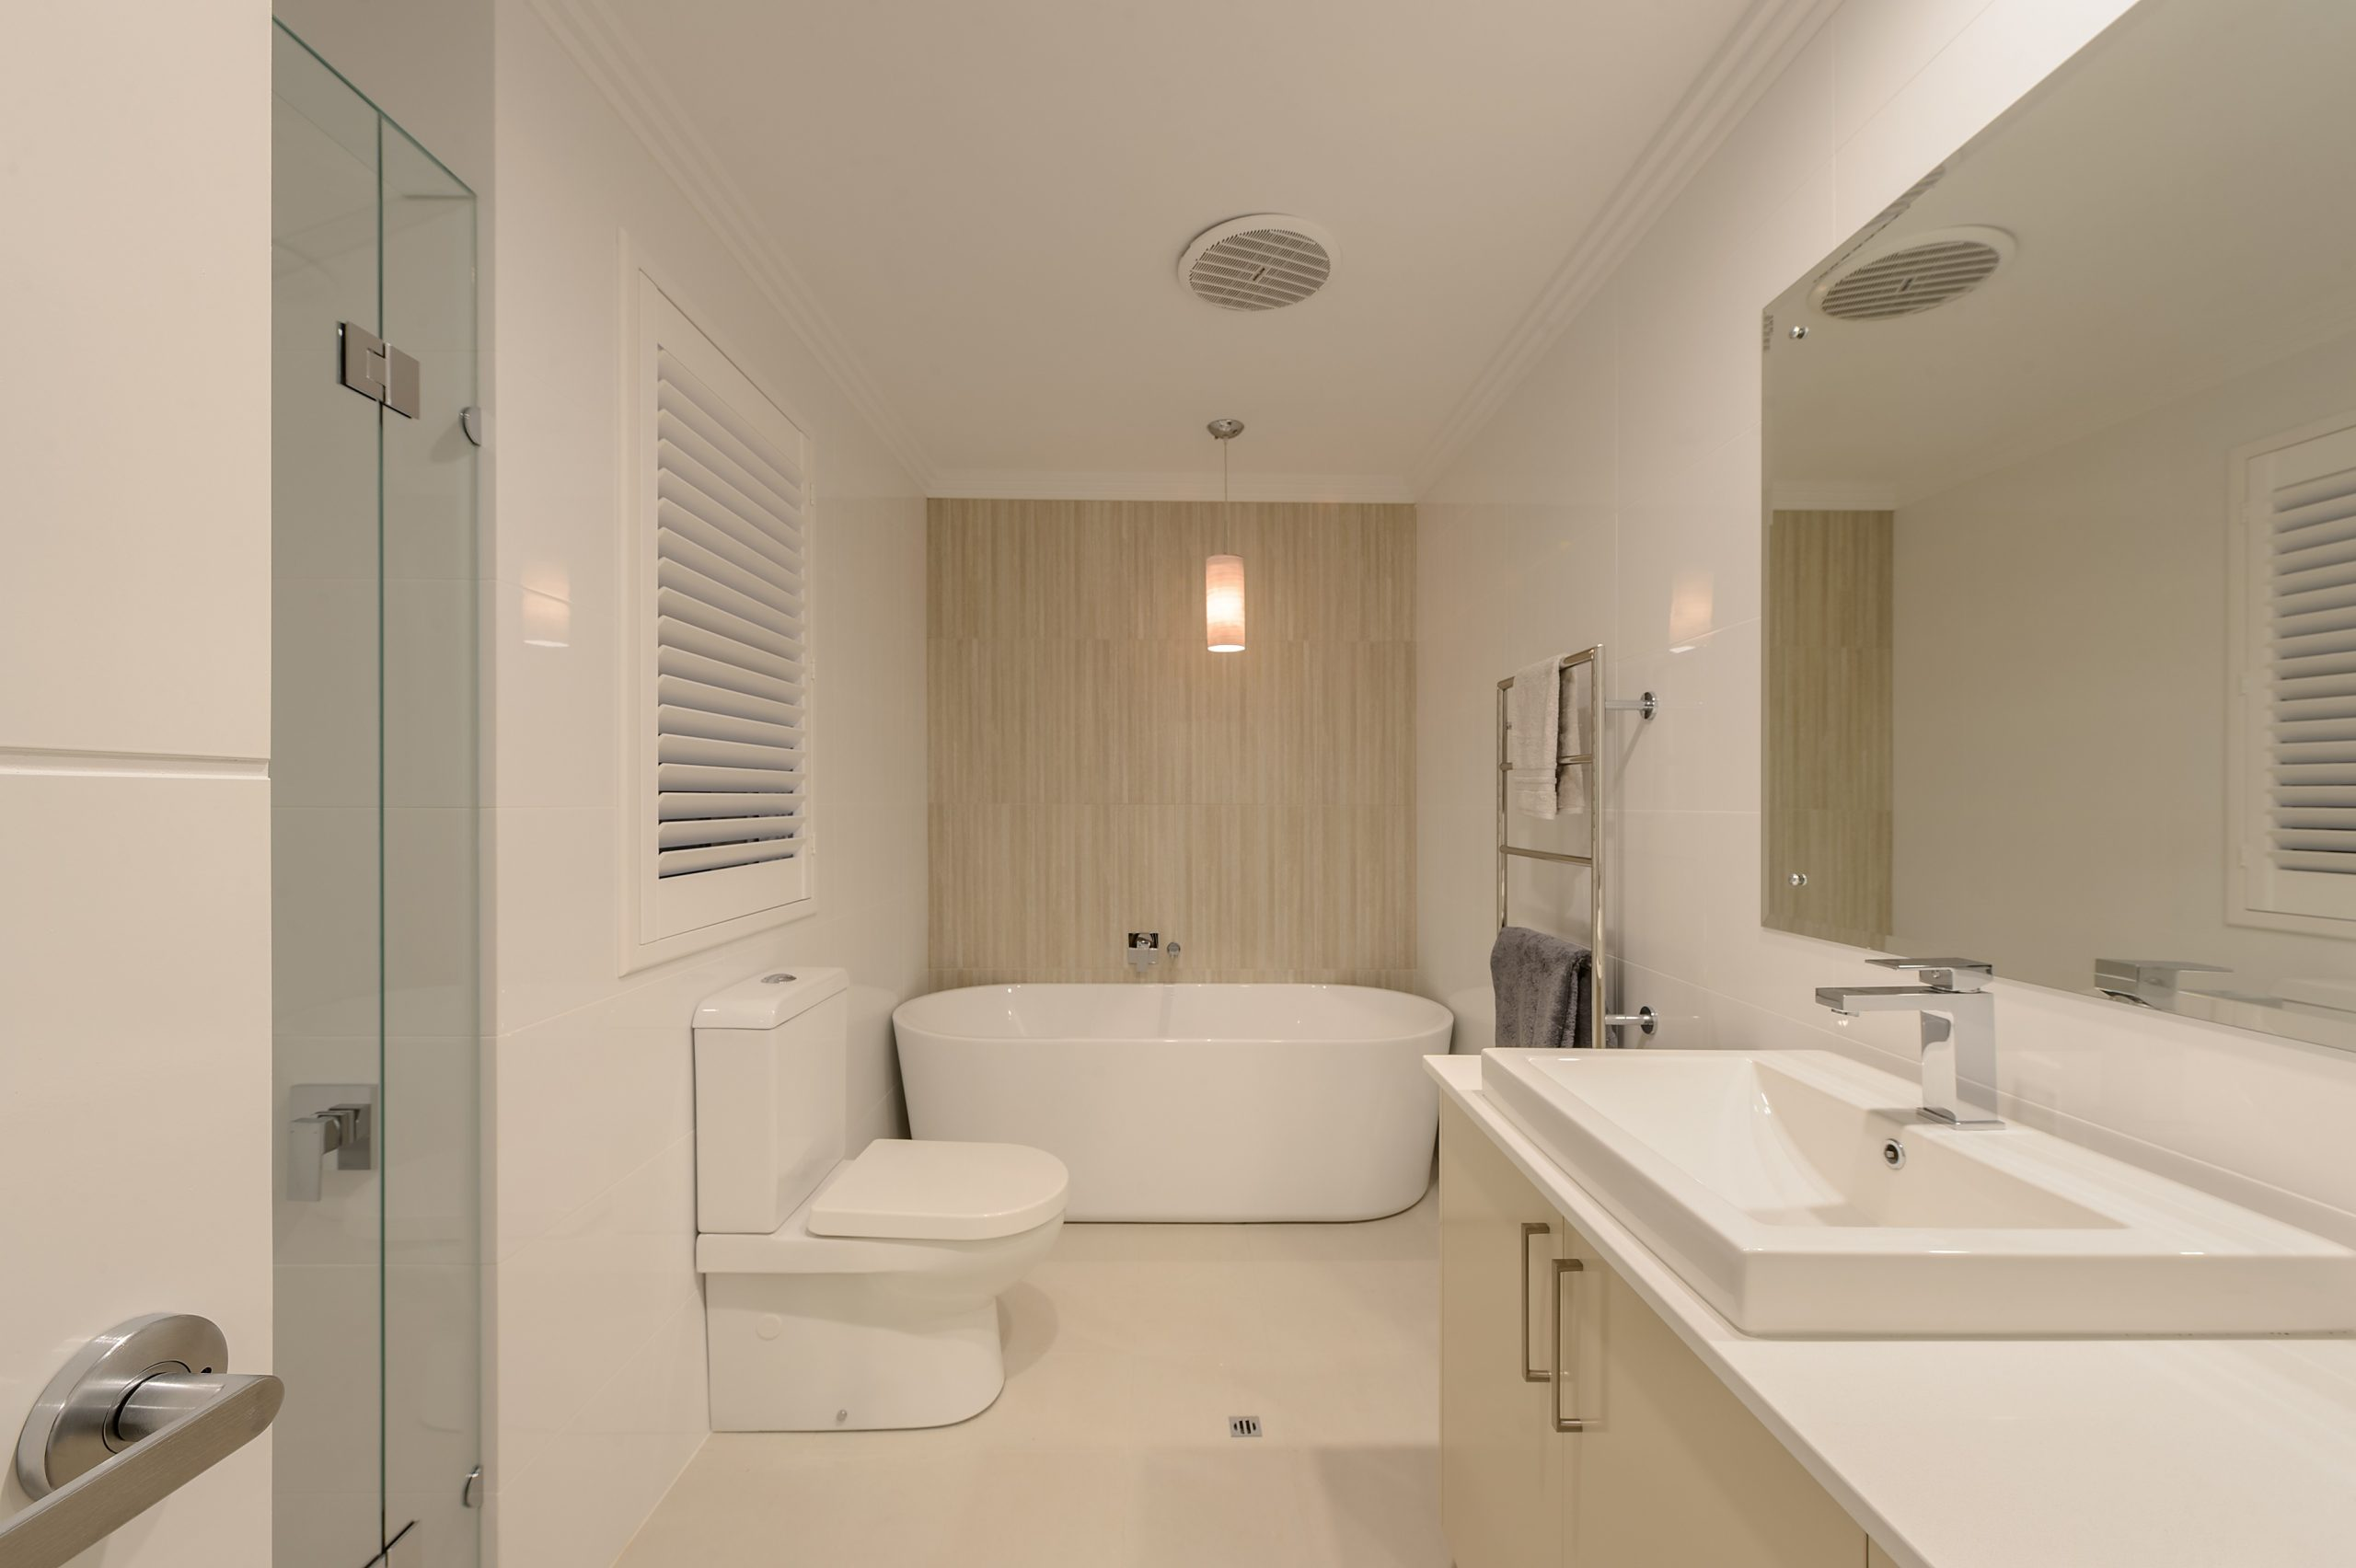 An all white bathroom with a bath tub, sink, toilet, large mirror and a very large louvre